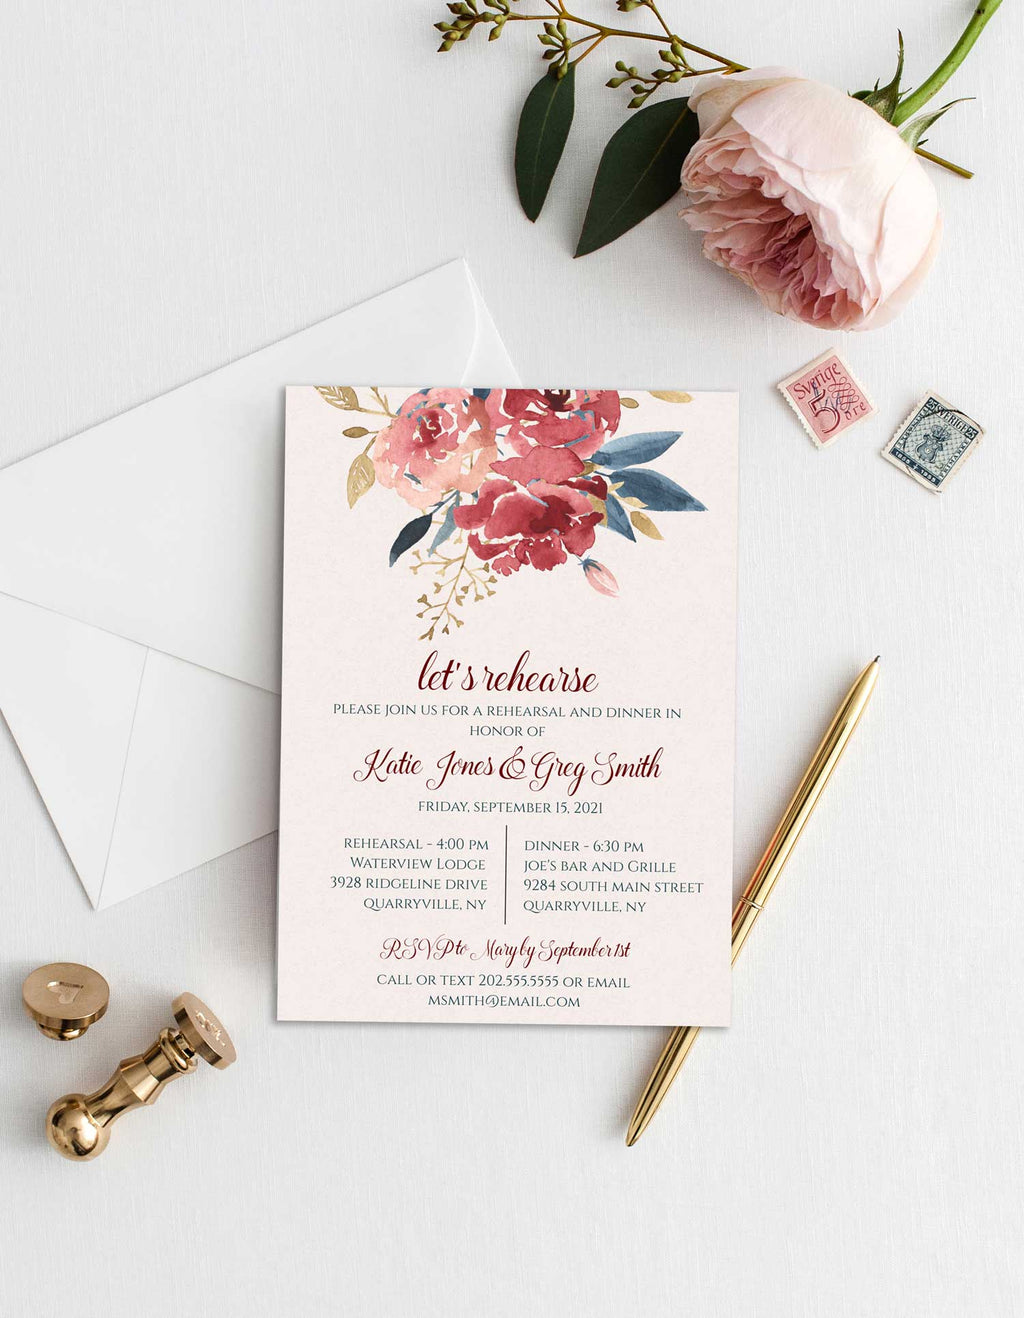 Burgundy and Teal Rehearsal Invitation